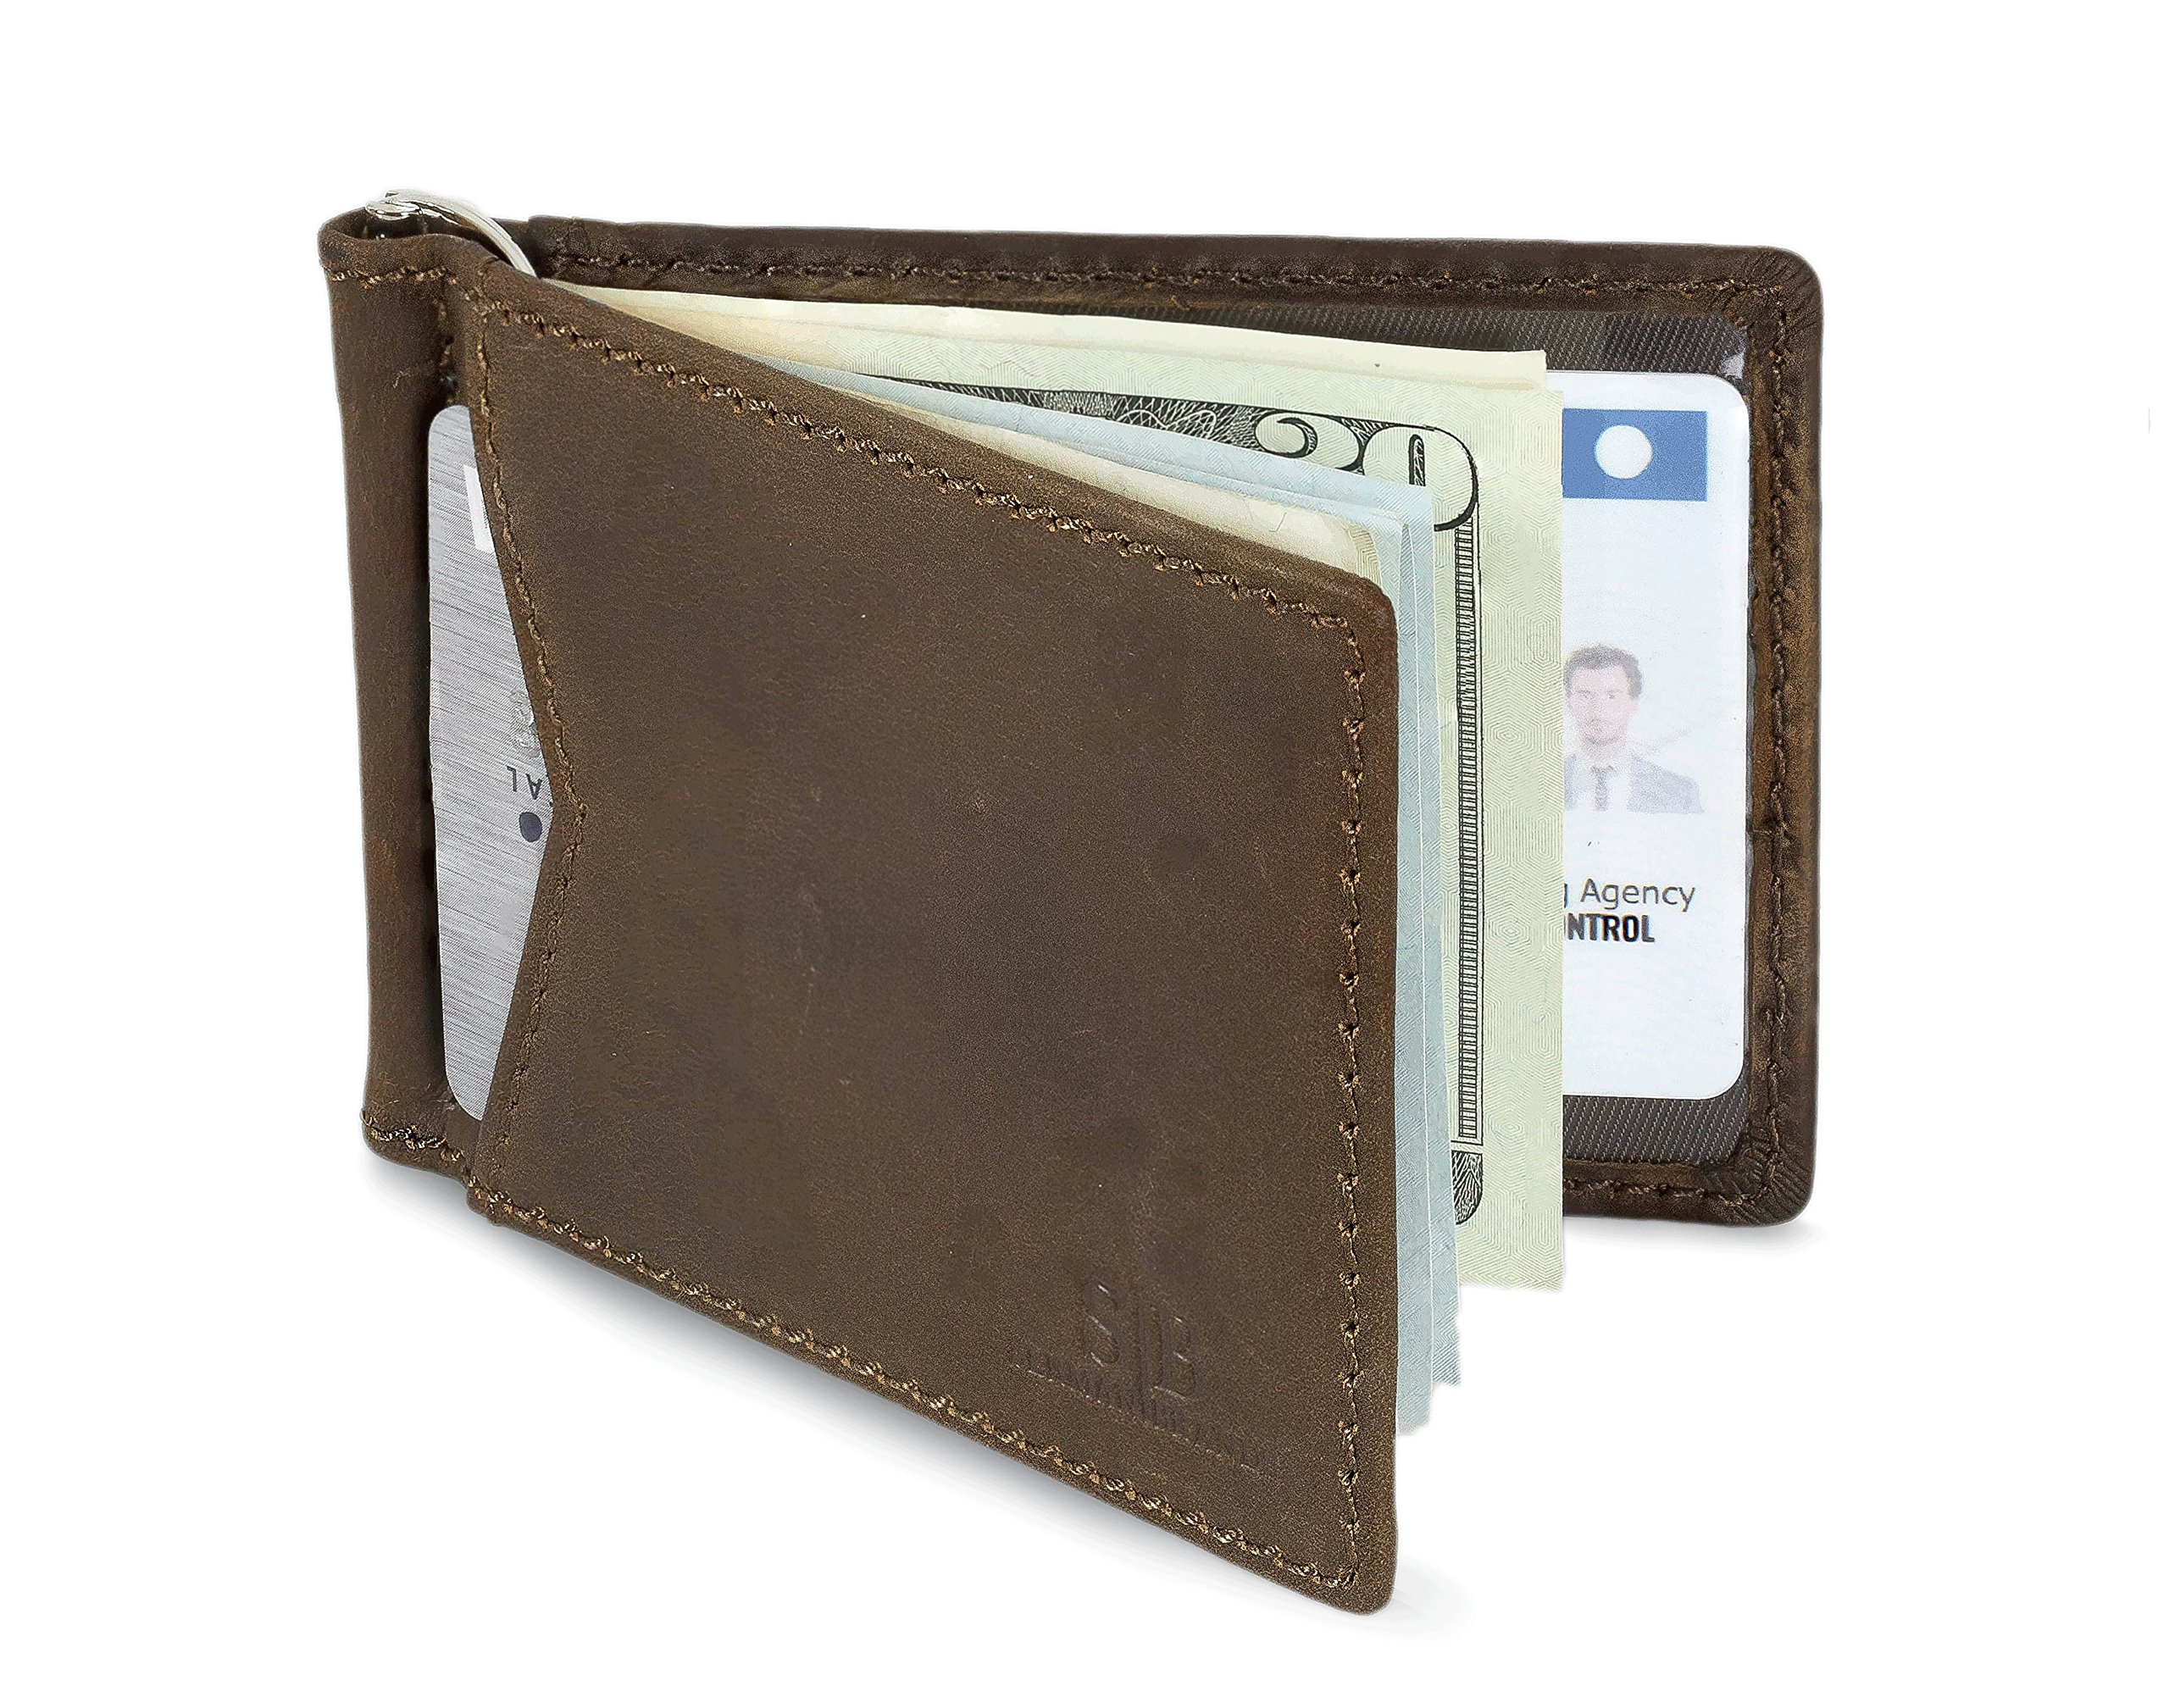 SERMAN BRANDS - RFID Blocking Leather Money Clip Slim Wallet, Minimalist Front Pocket Wallets For Men Made From Full Grain Leather (California Brown M1)